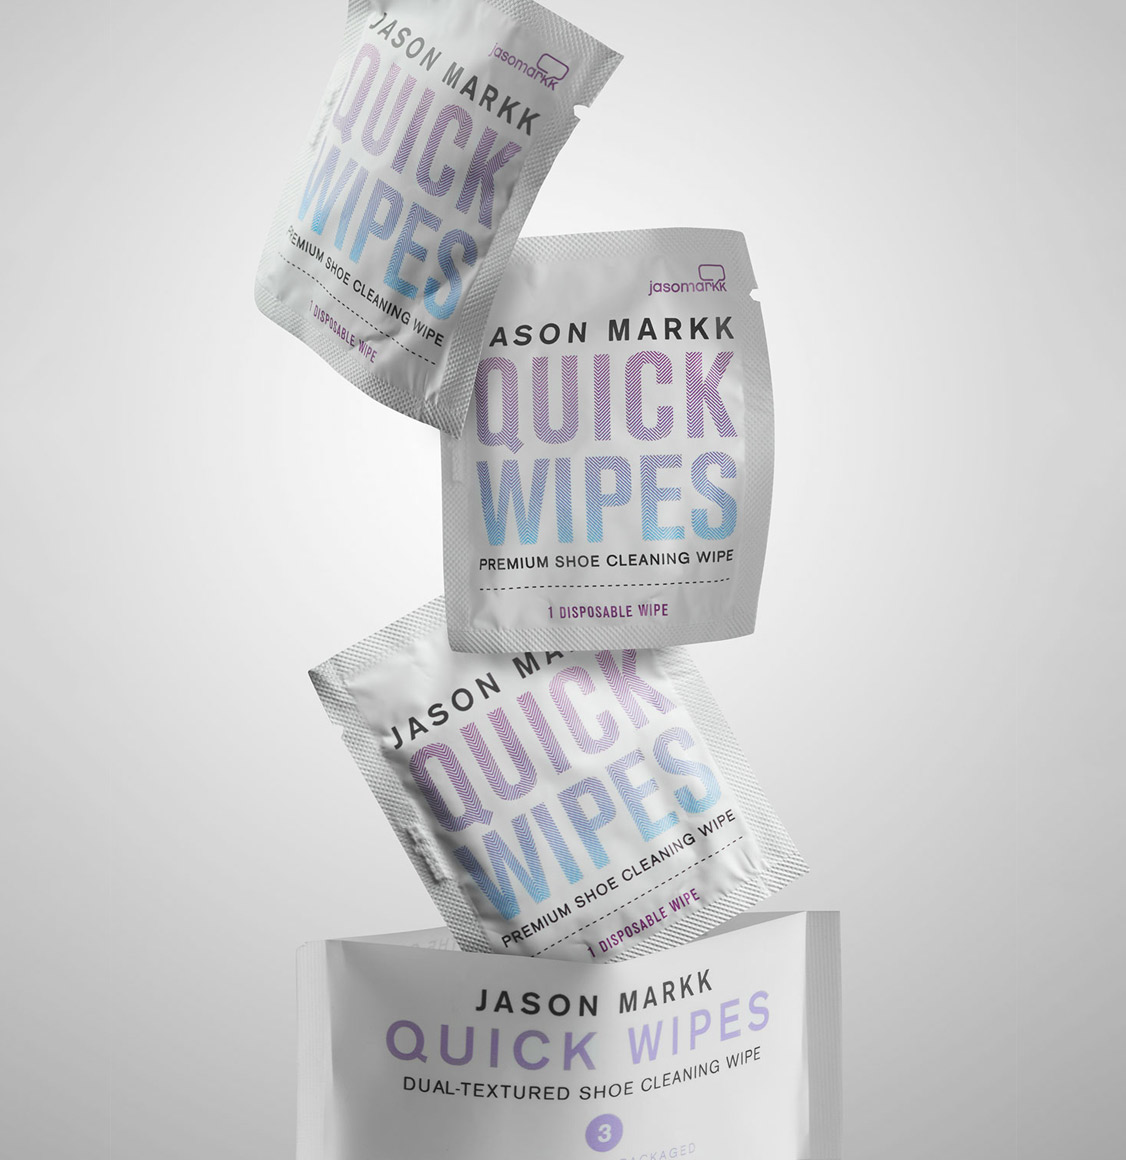 Jason Markk Pack of 3 Quick Wipes